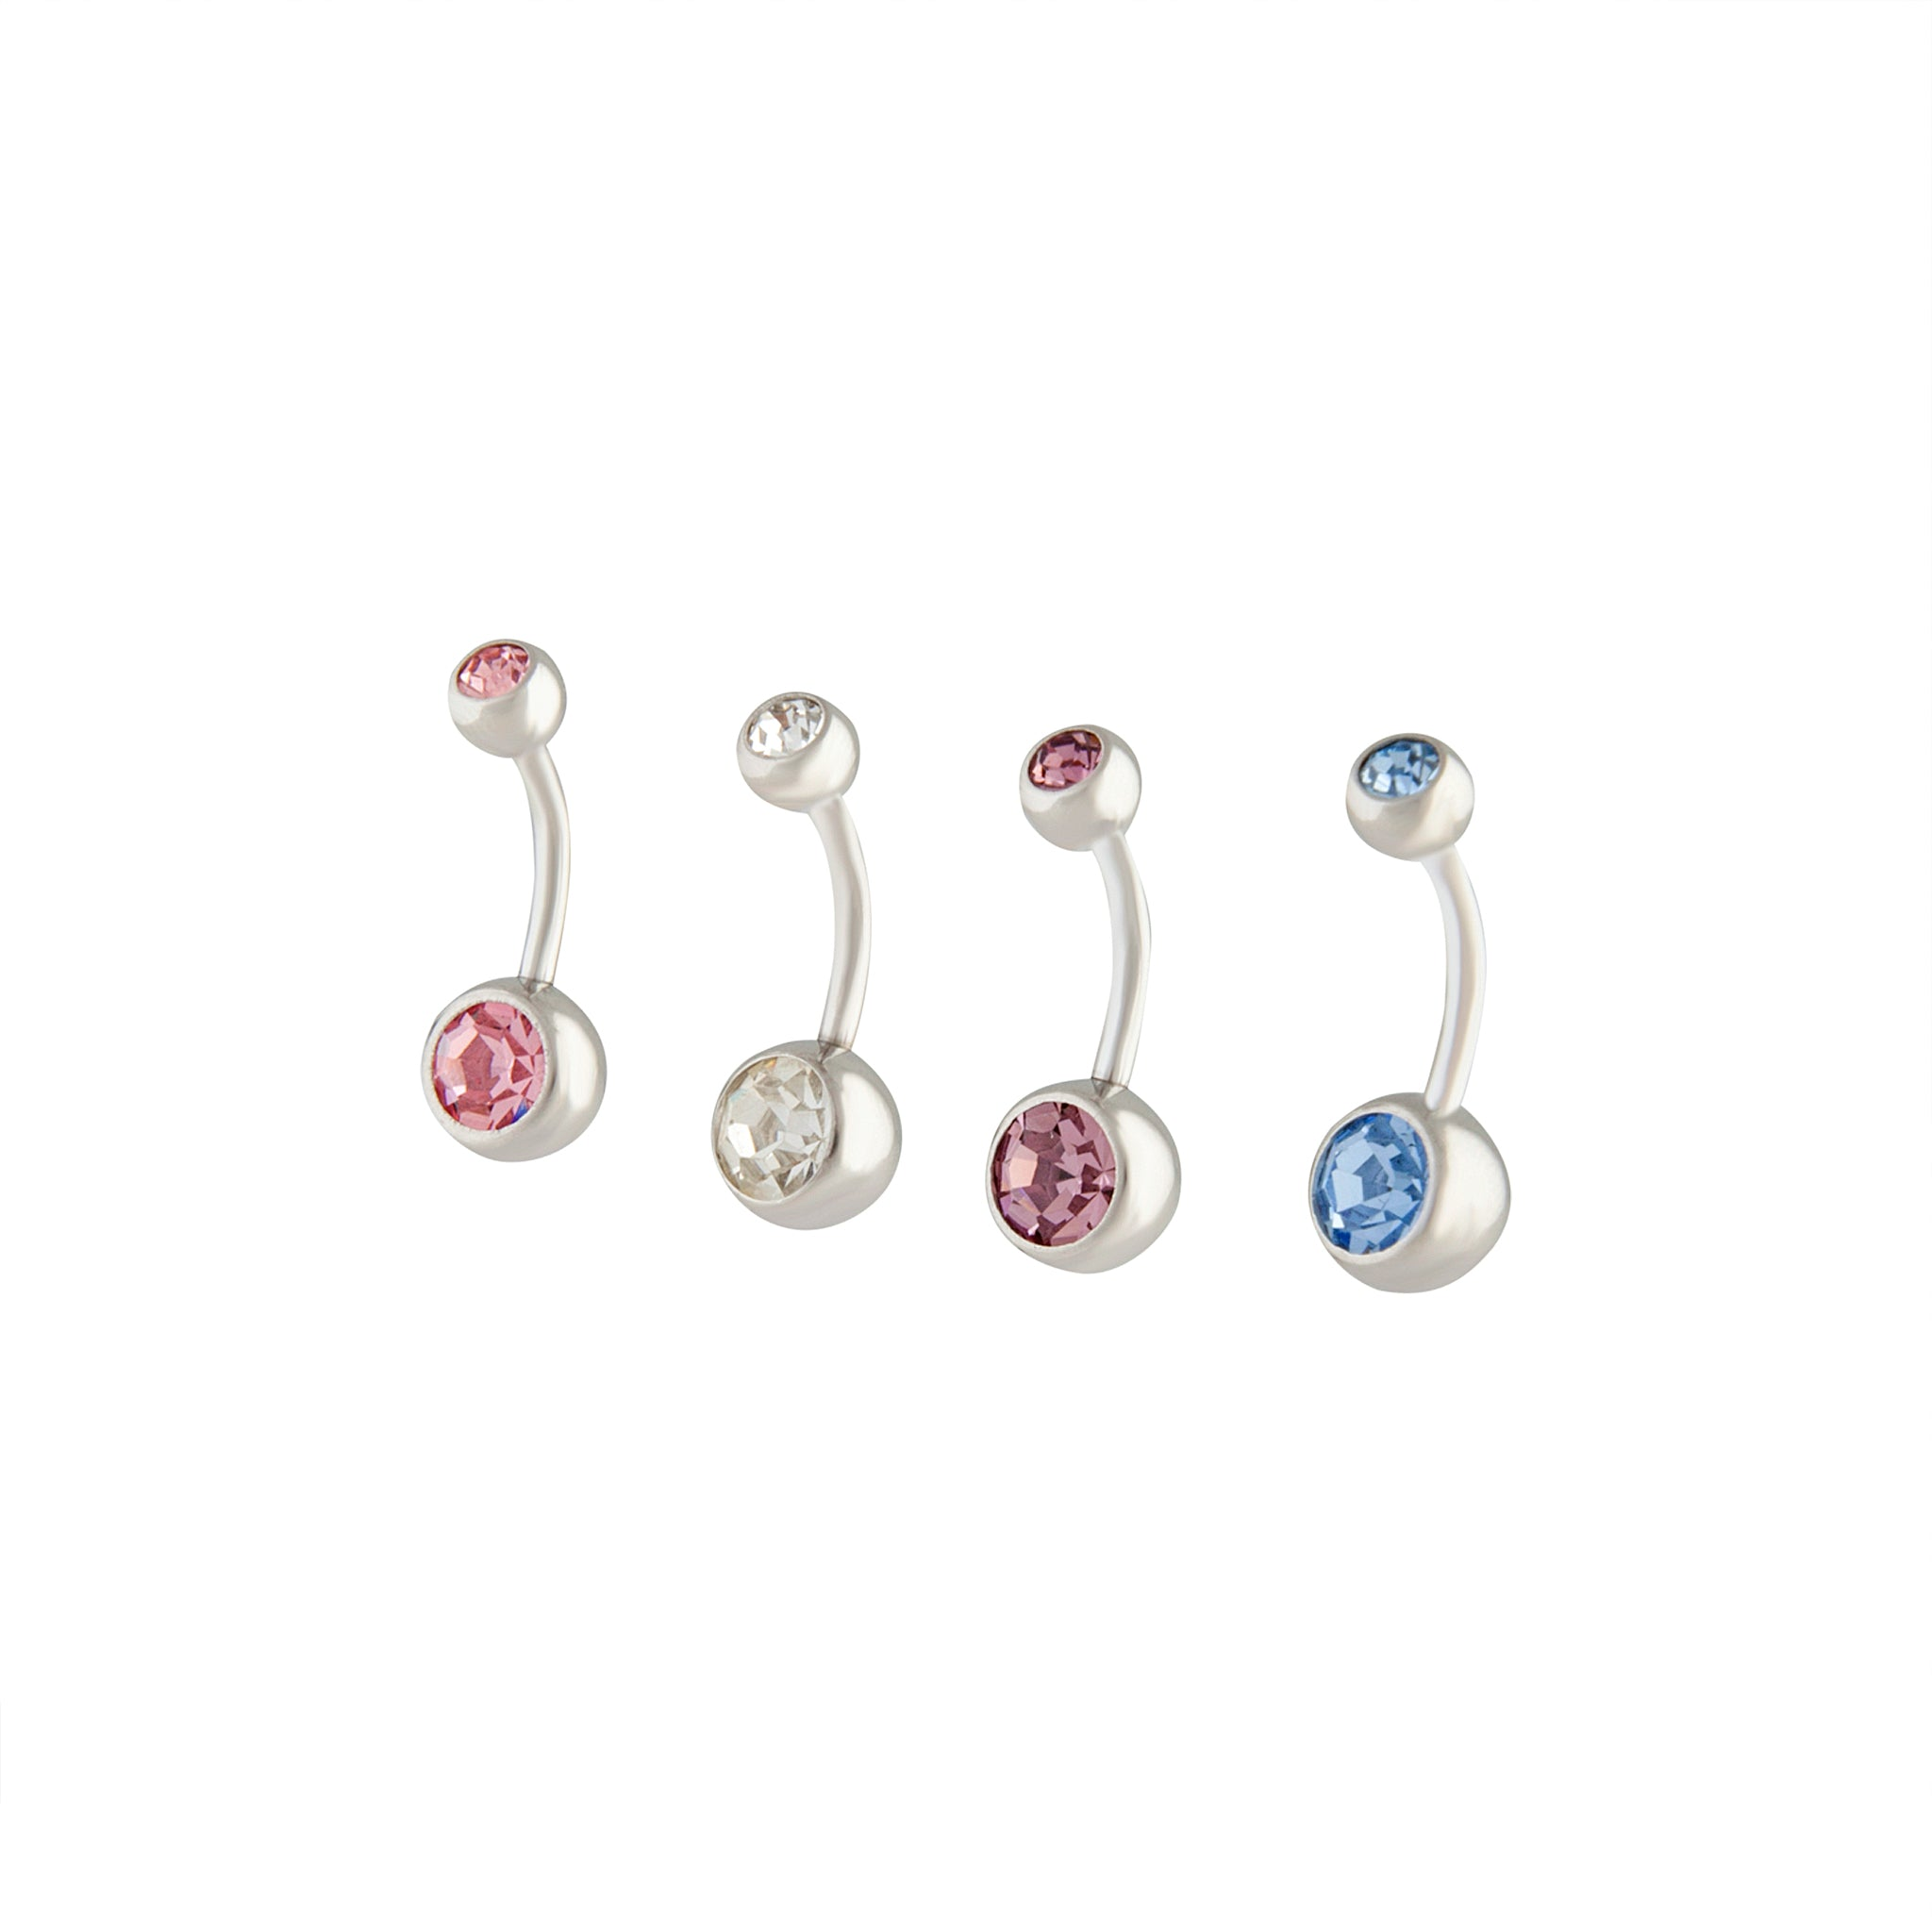 Rhodium Mixed Metal Belly Bar 4 Pack